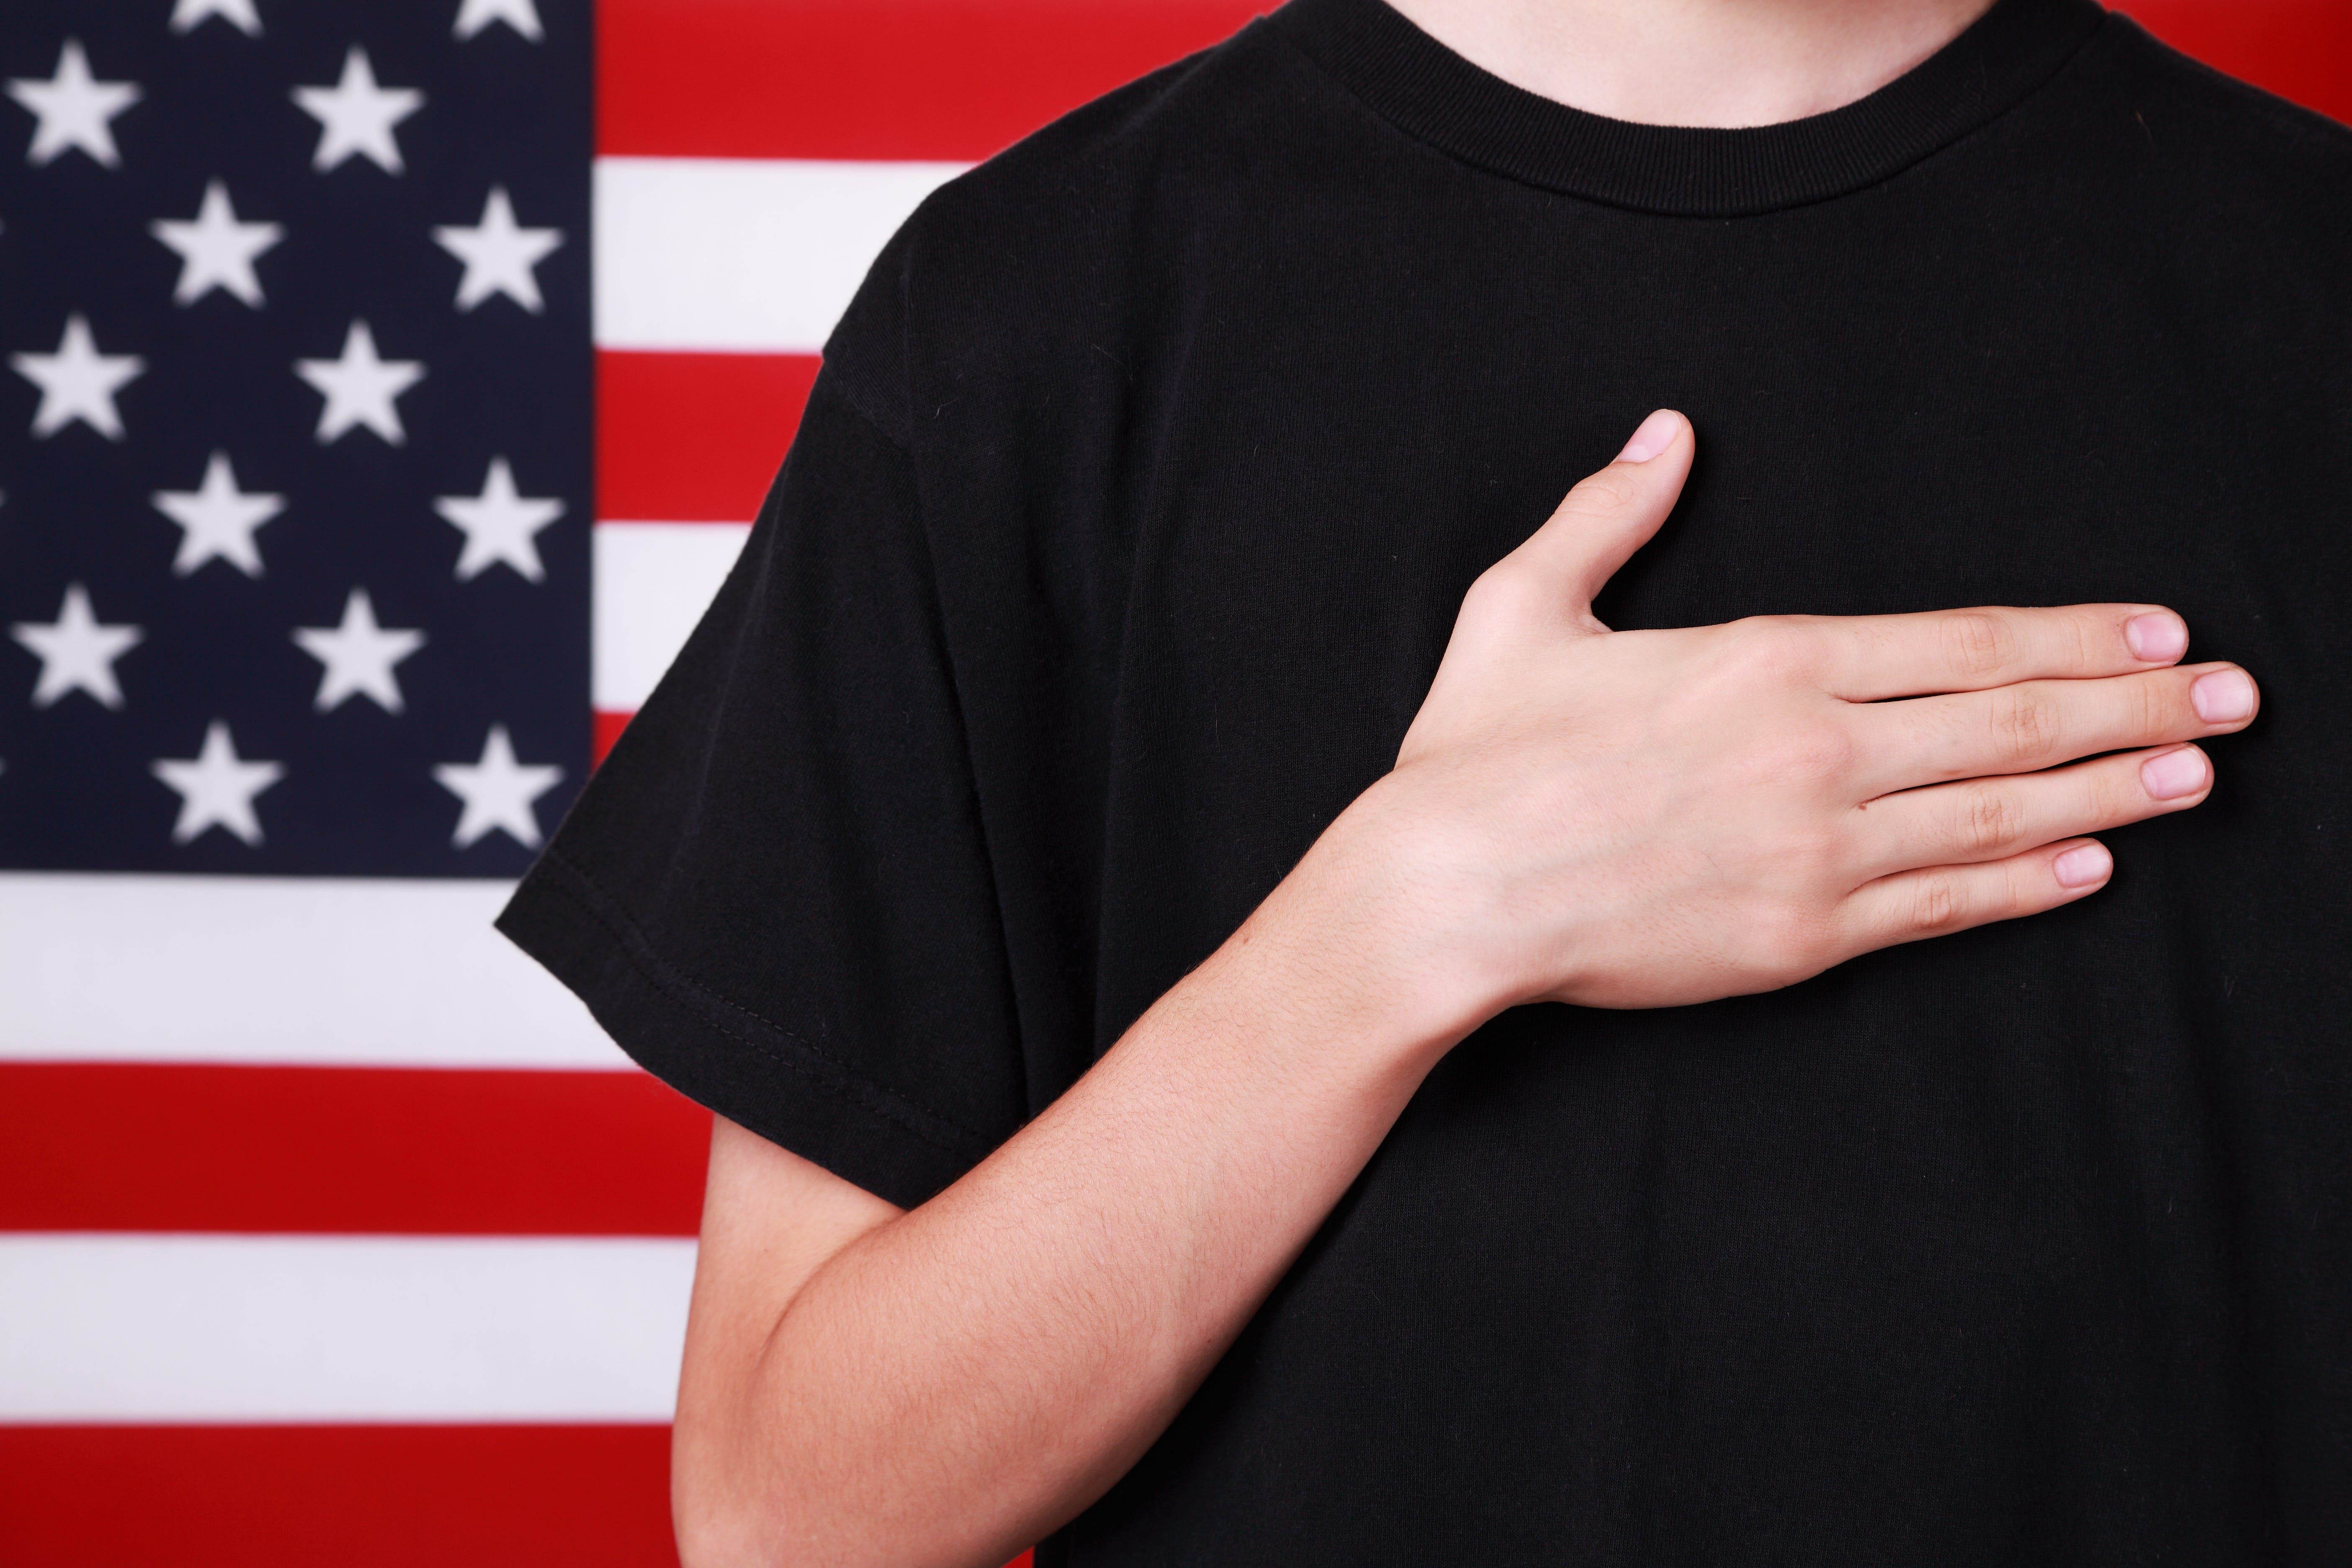 photo about Pledge of Allegiance in Spanish Printable named Florida college student, 11, arrested once refusing Pledge of